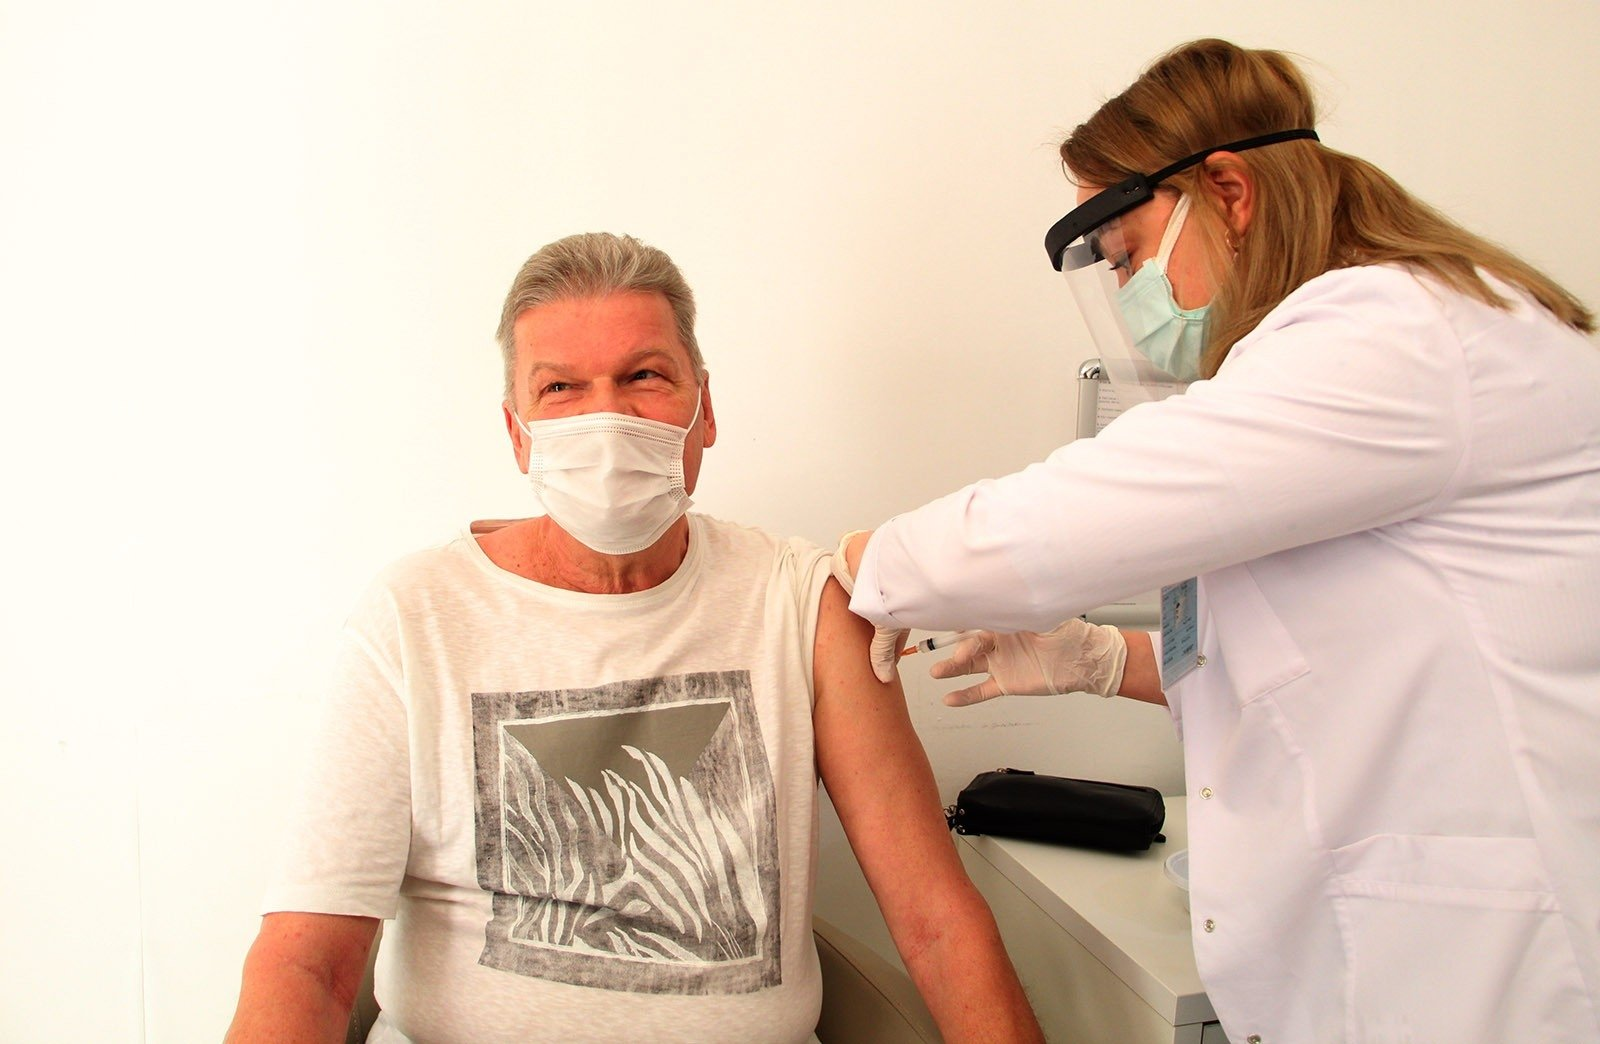 A man gets vaccinated against the coronavirus, in Antalya, southern Turkey, March 5, 2021. (İHA PHOTO)